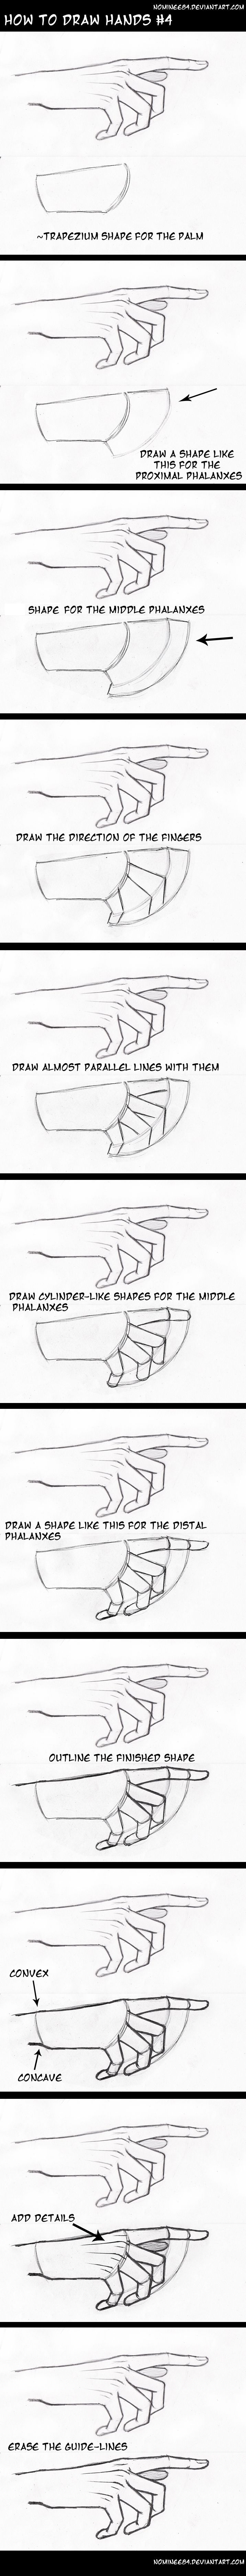 how to draw hands4 by nominee84.deviantart.com on @DeviantArt